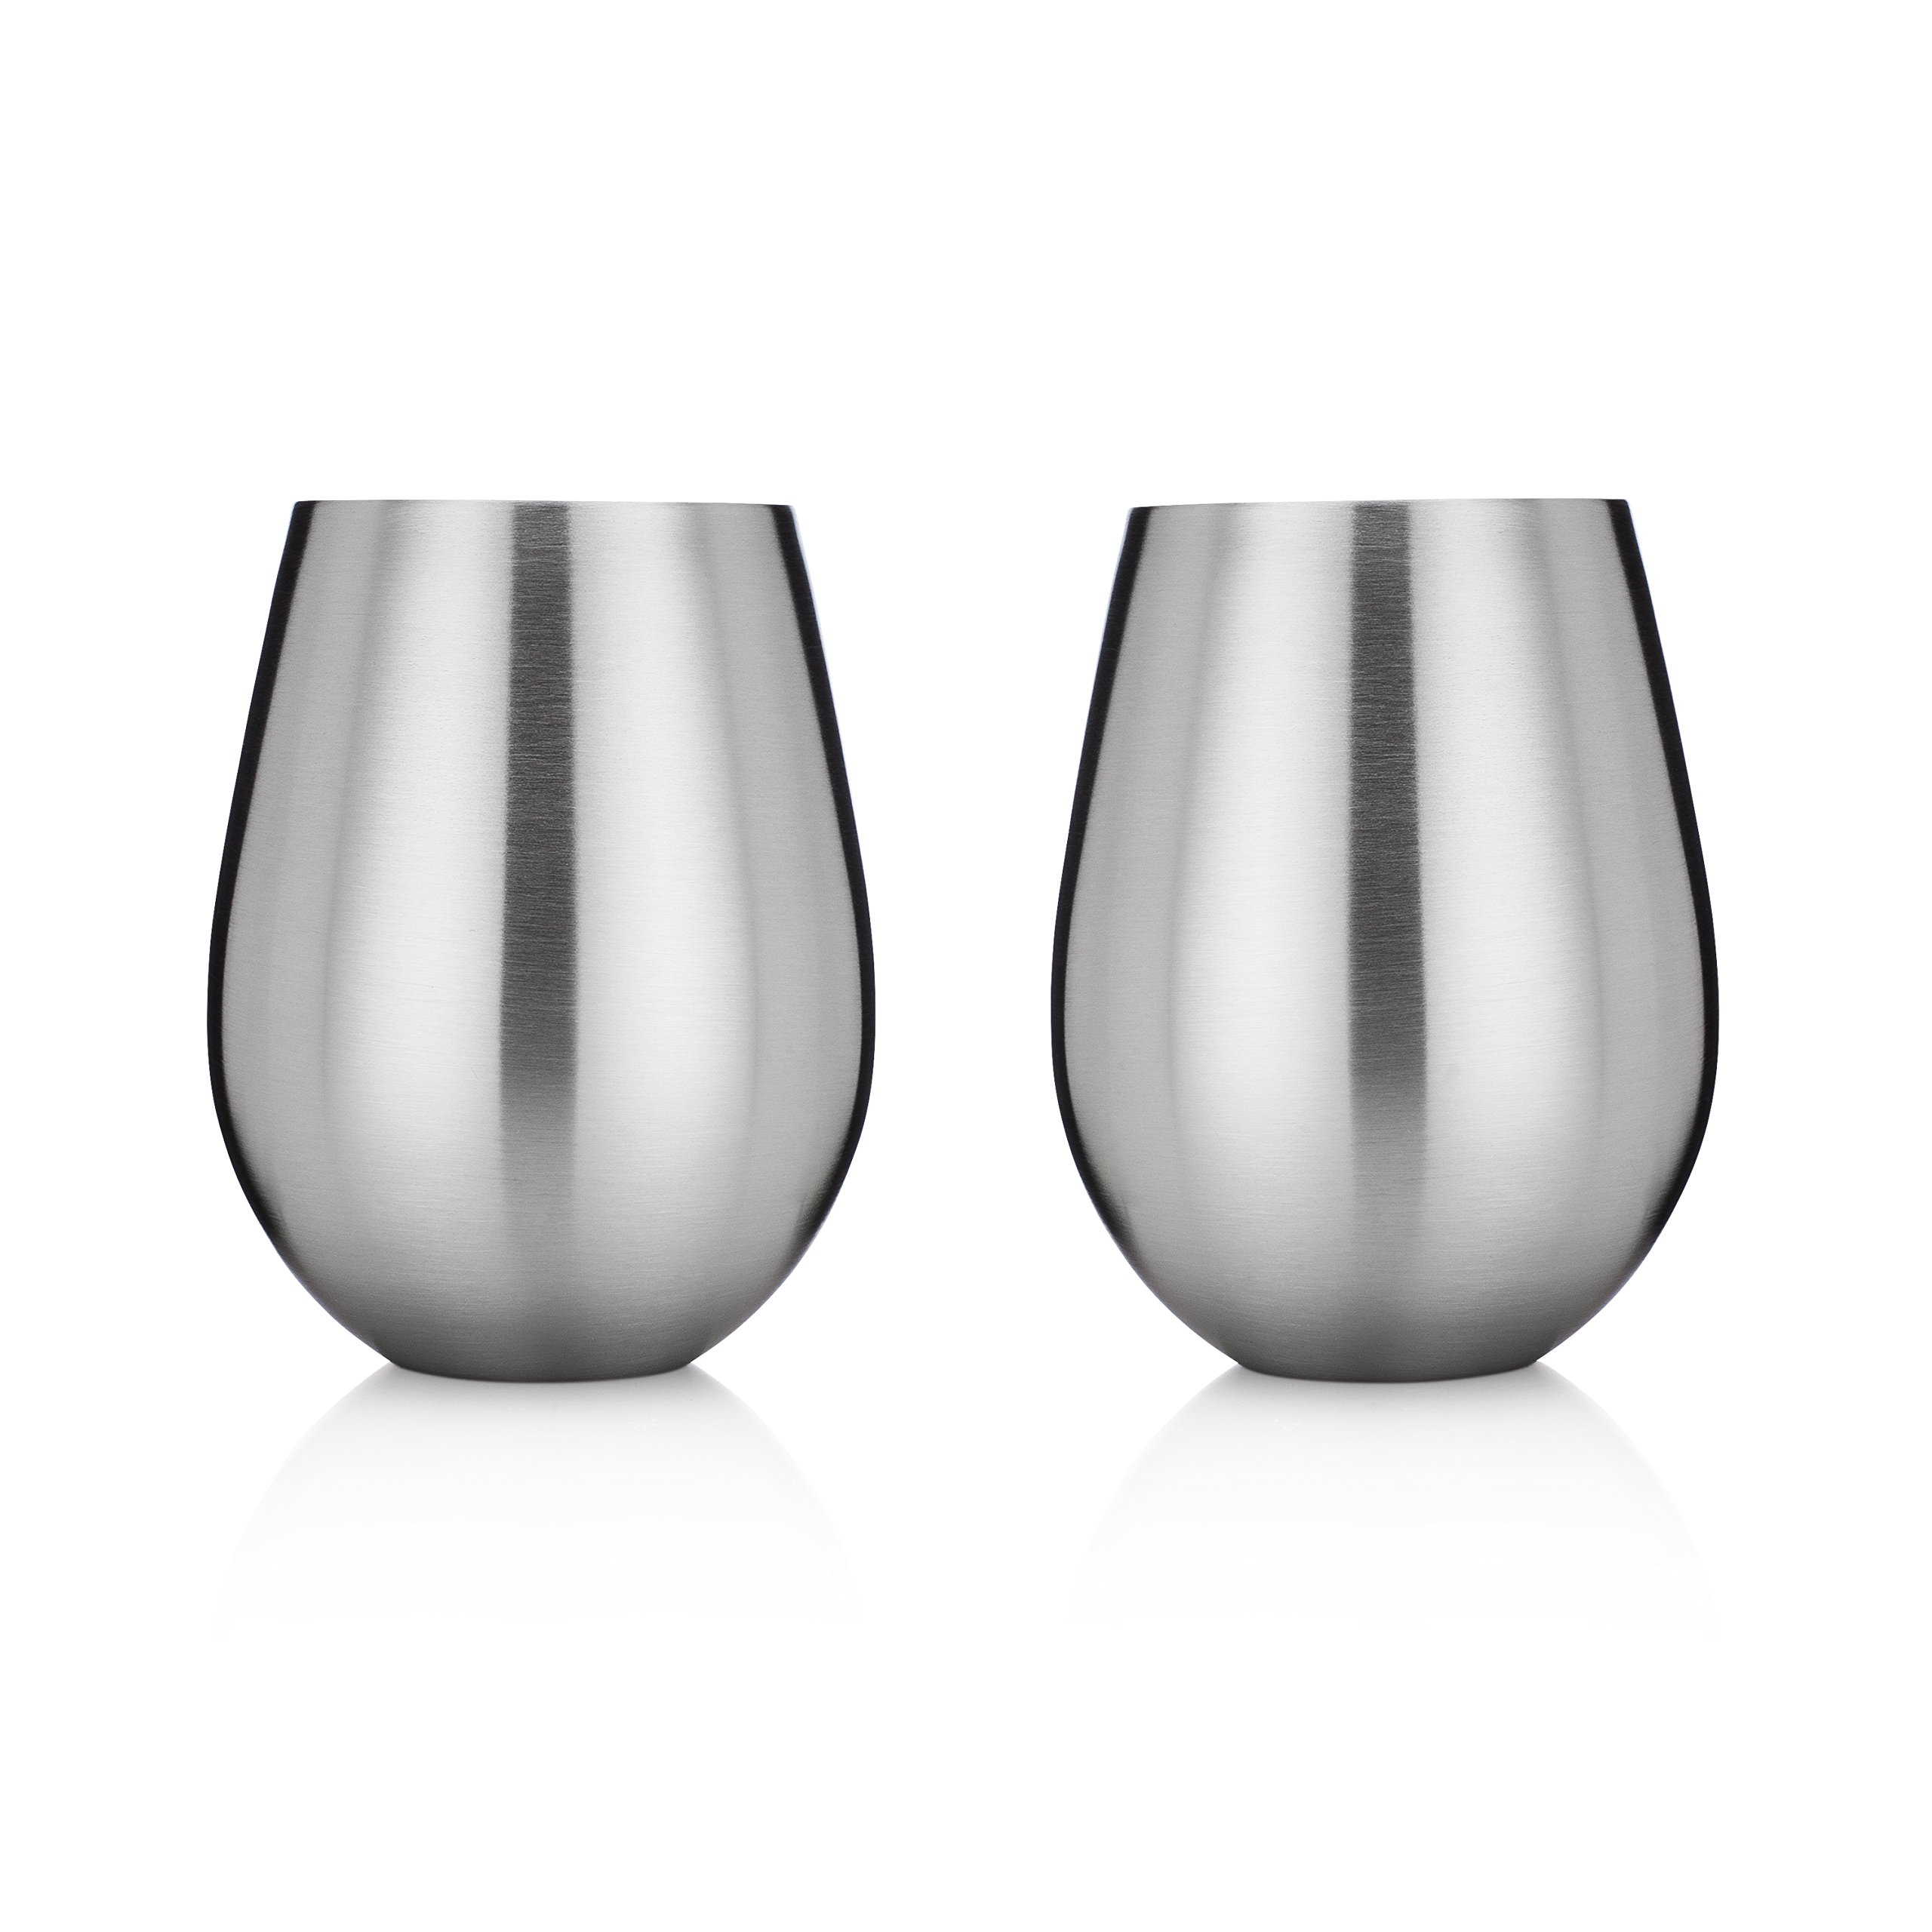 Stainless Steel Stemless Wine Glasses by Avito - 12 oz. and Shatterproof - BPA Free Healthy Choice - Set of 2 - Best Value